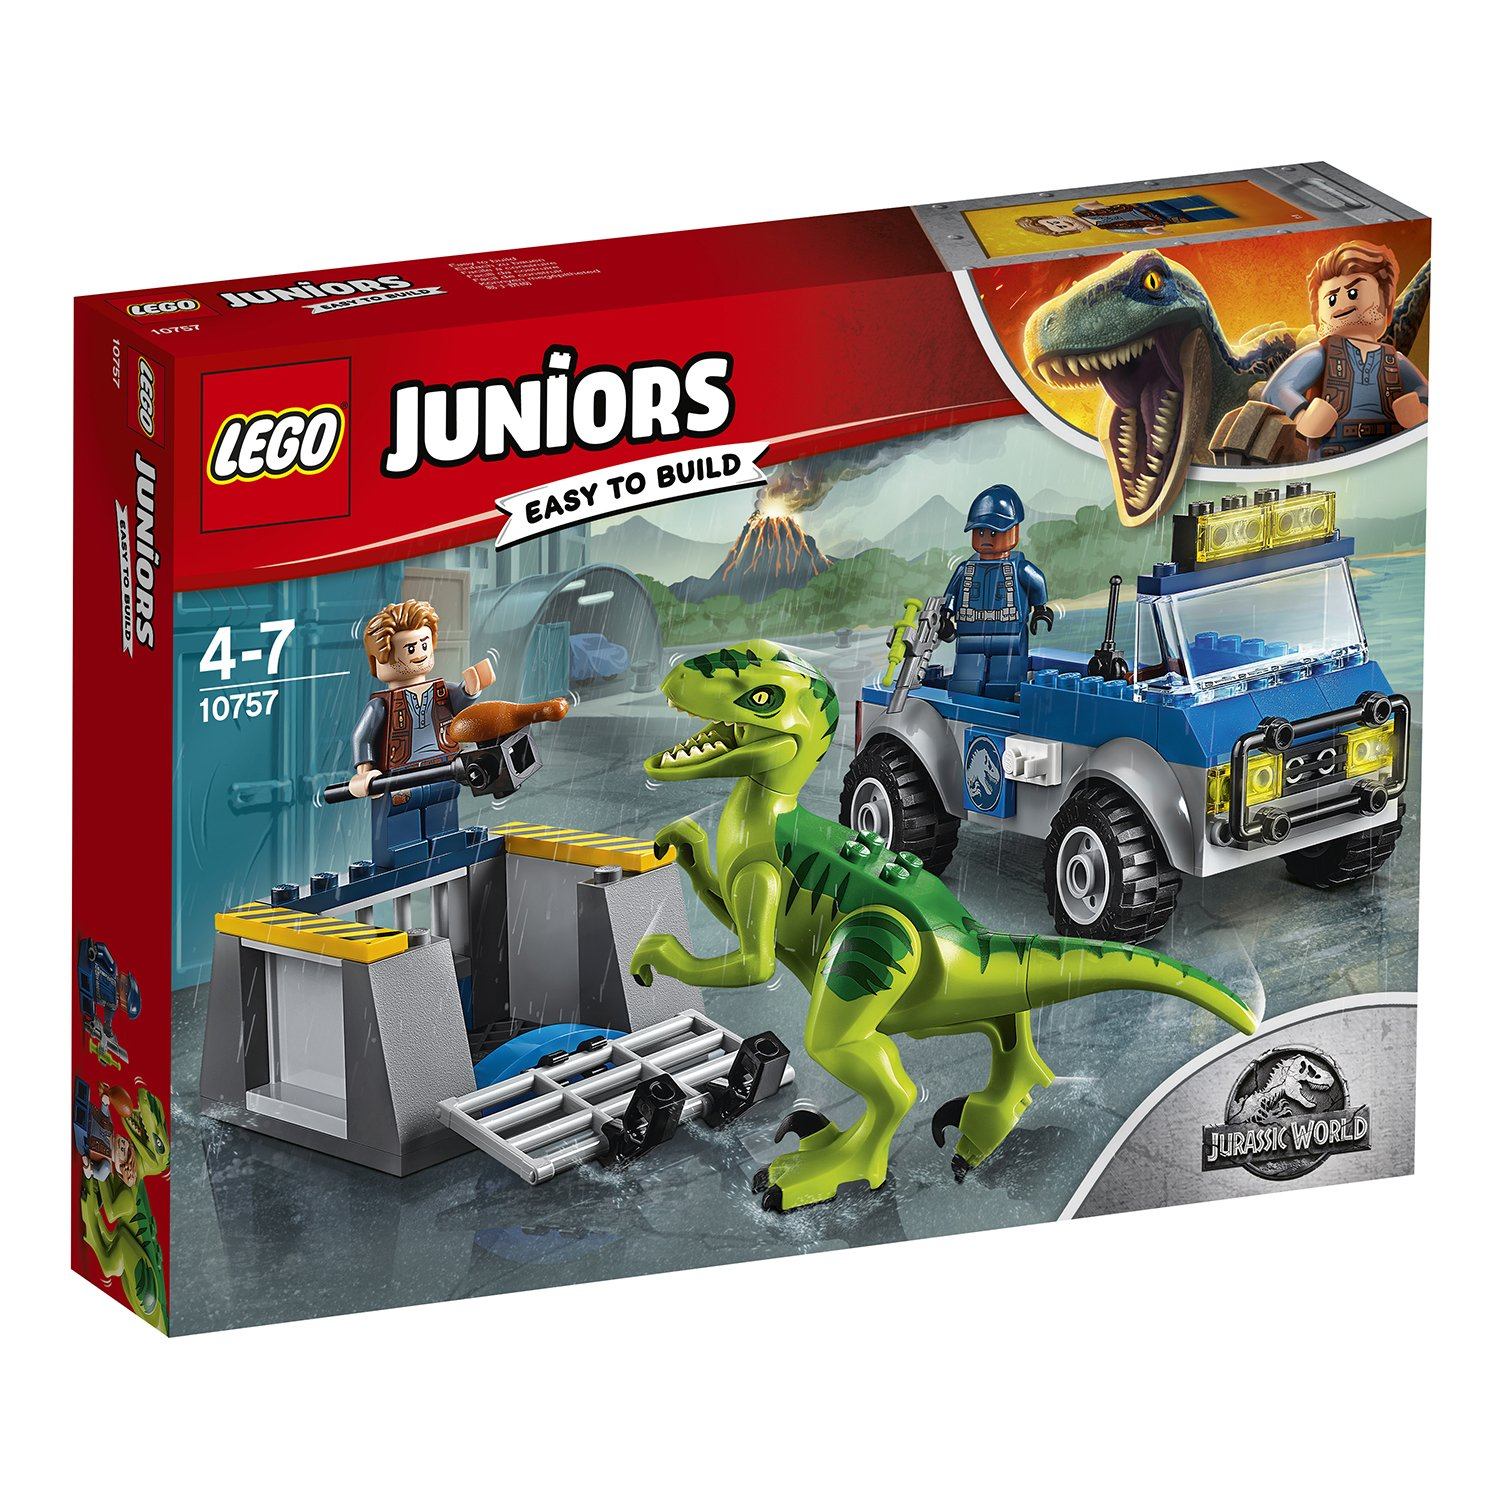 Конструктор LEGO Junior Jurassic World Грузовик спасателей для перевозки раптора